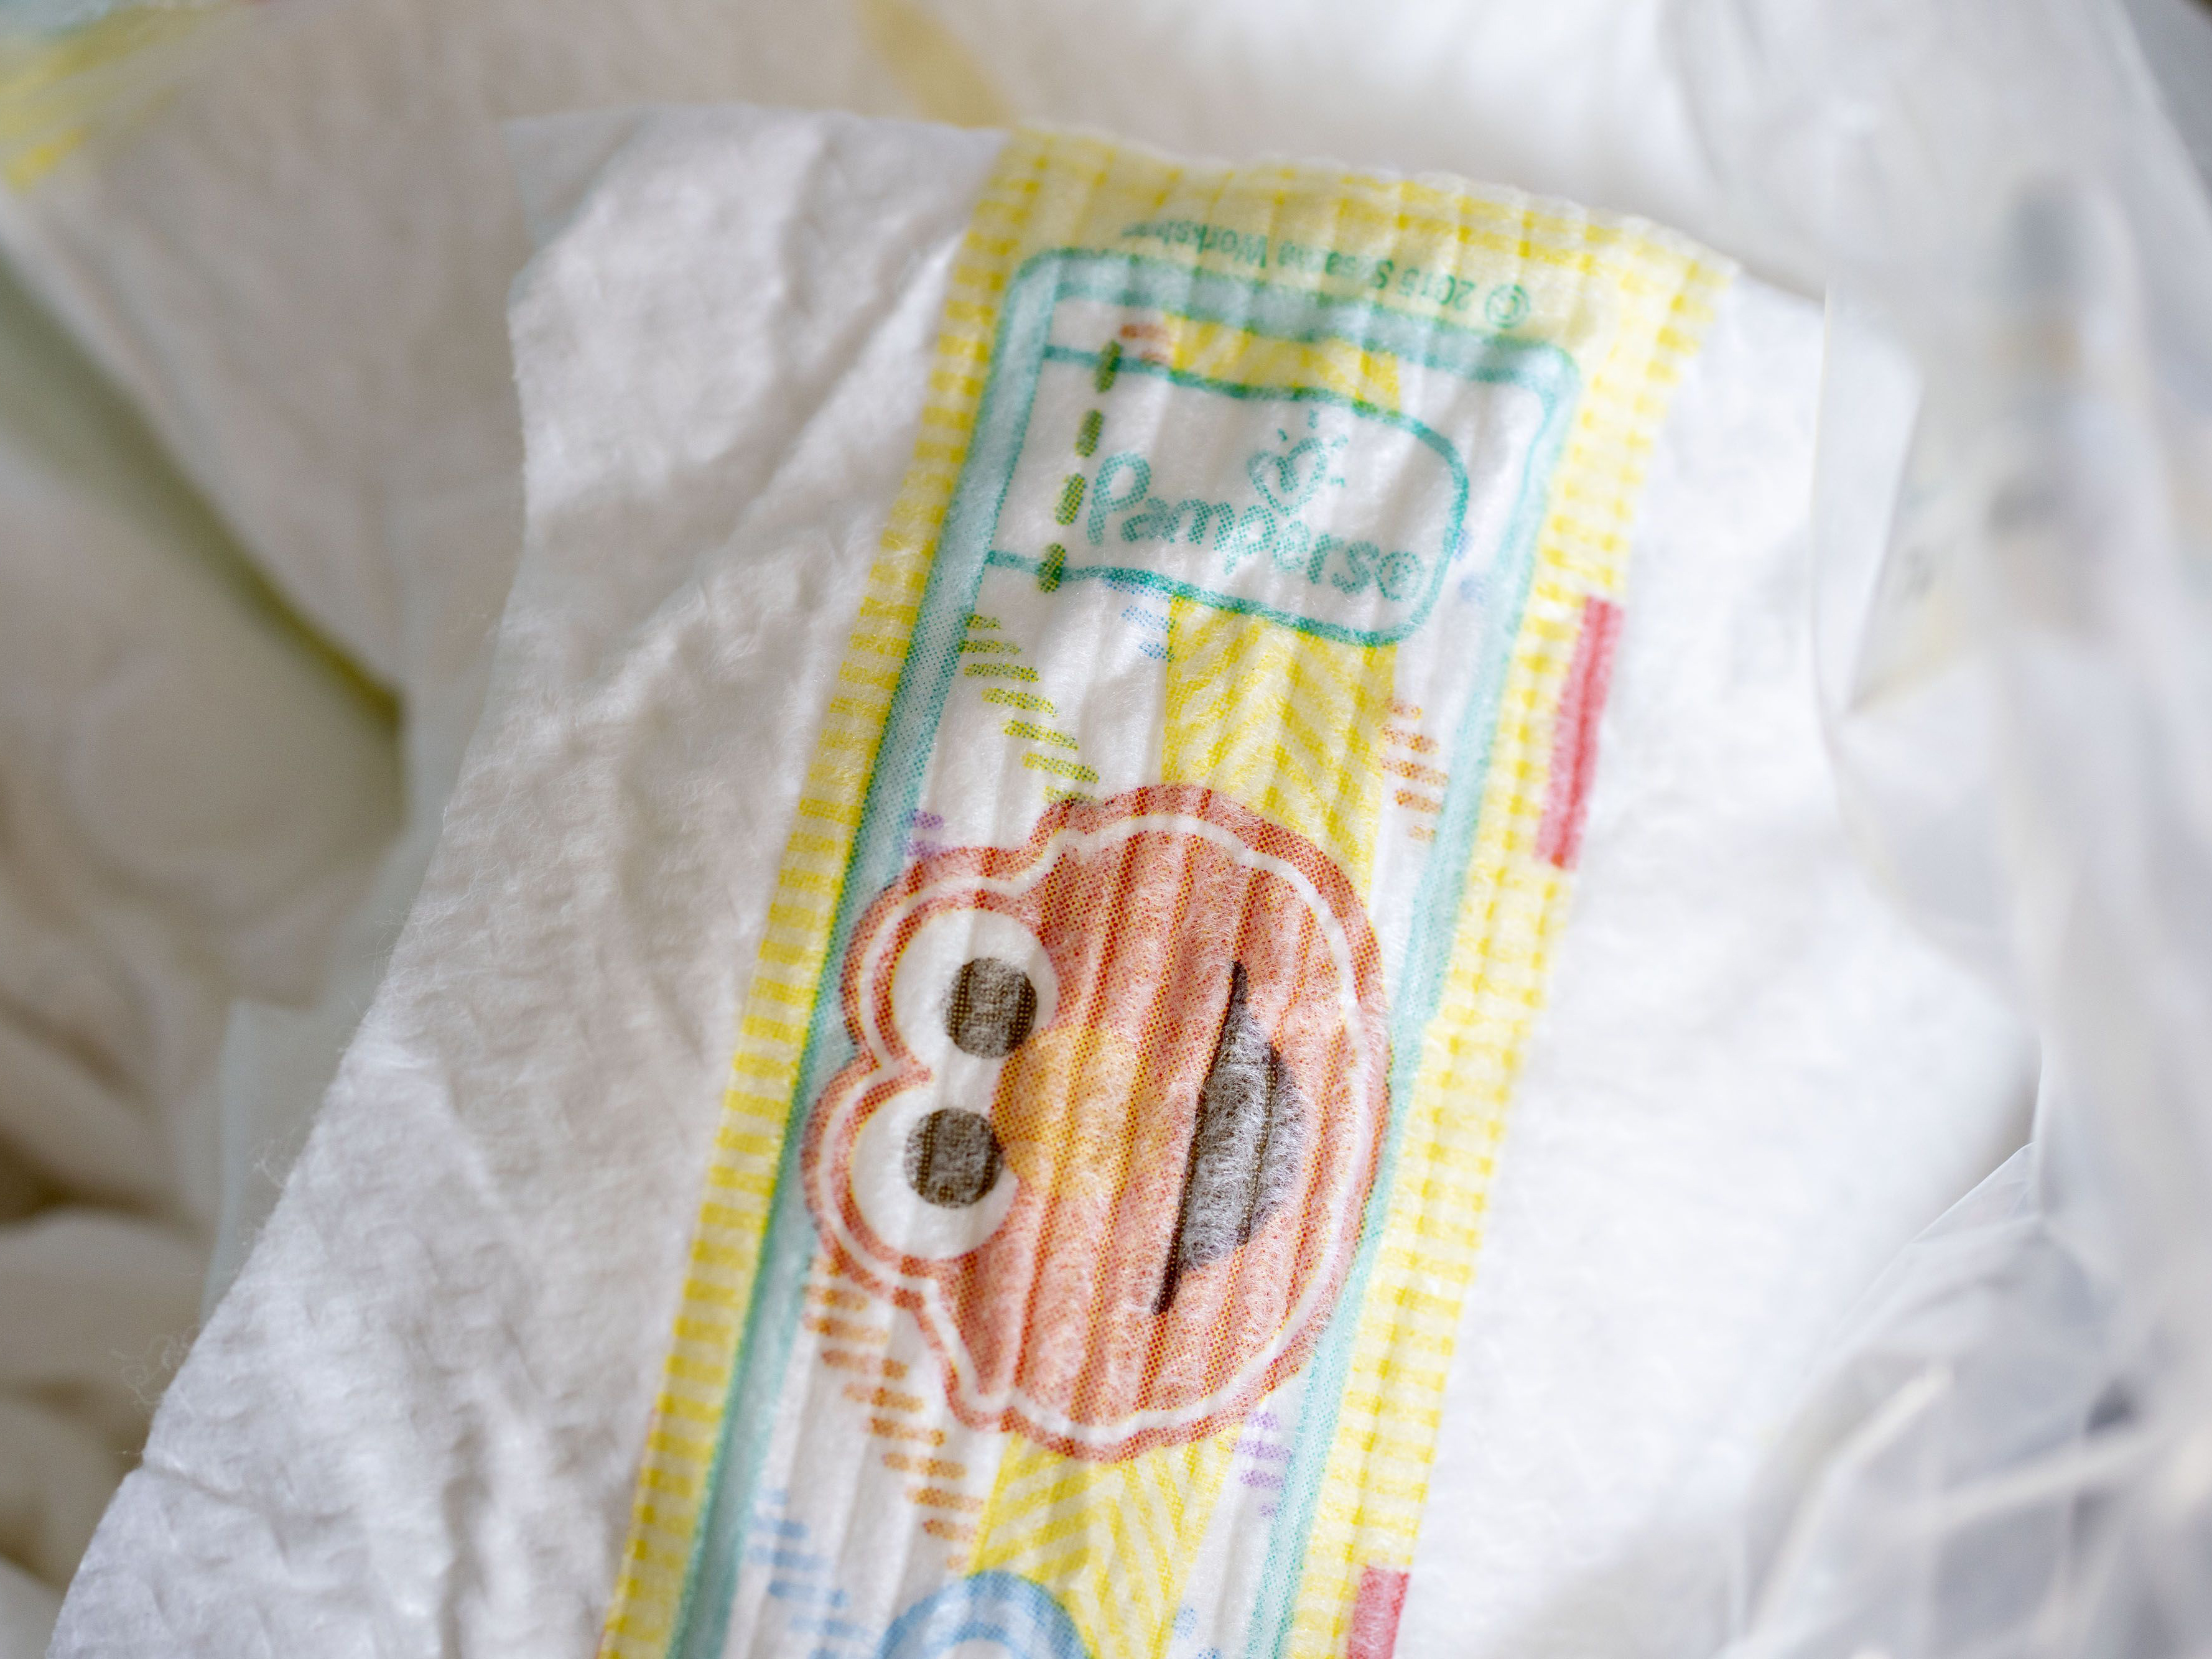 P&G Hopes to Develop Recyclable Diaper in Battle Against Waste